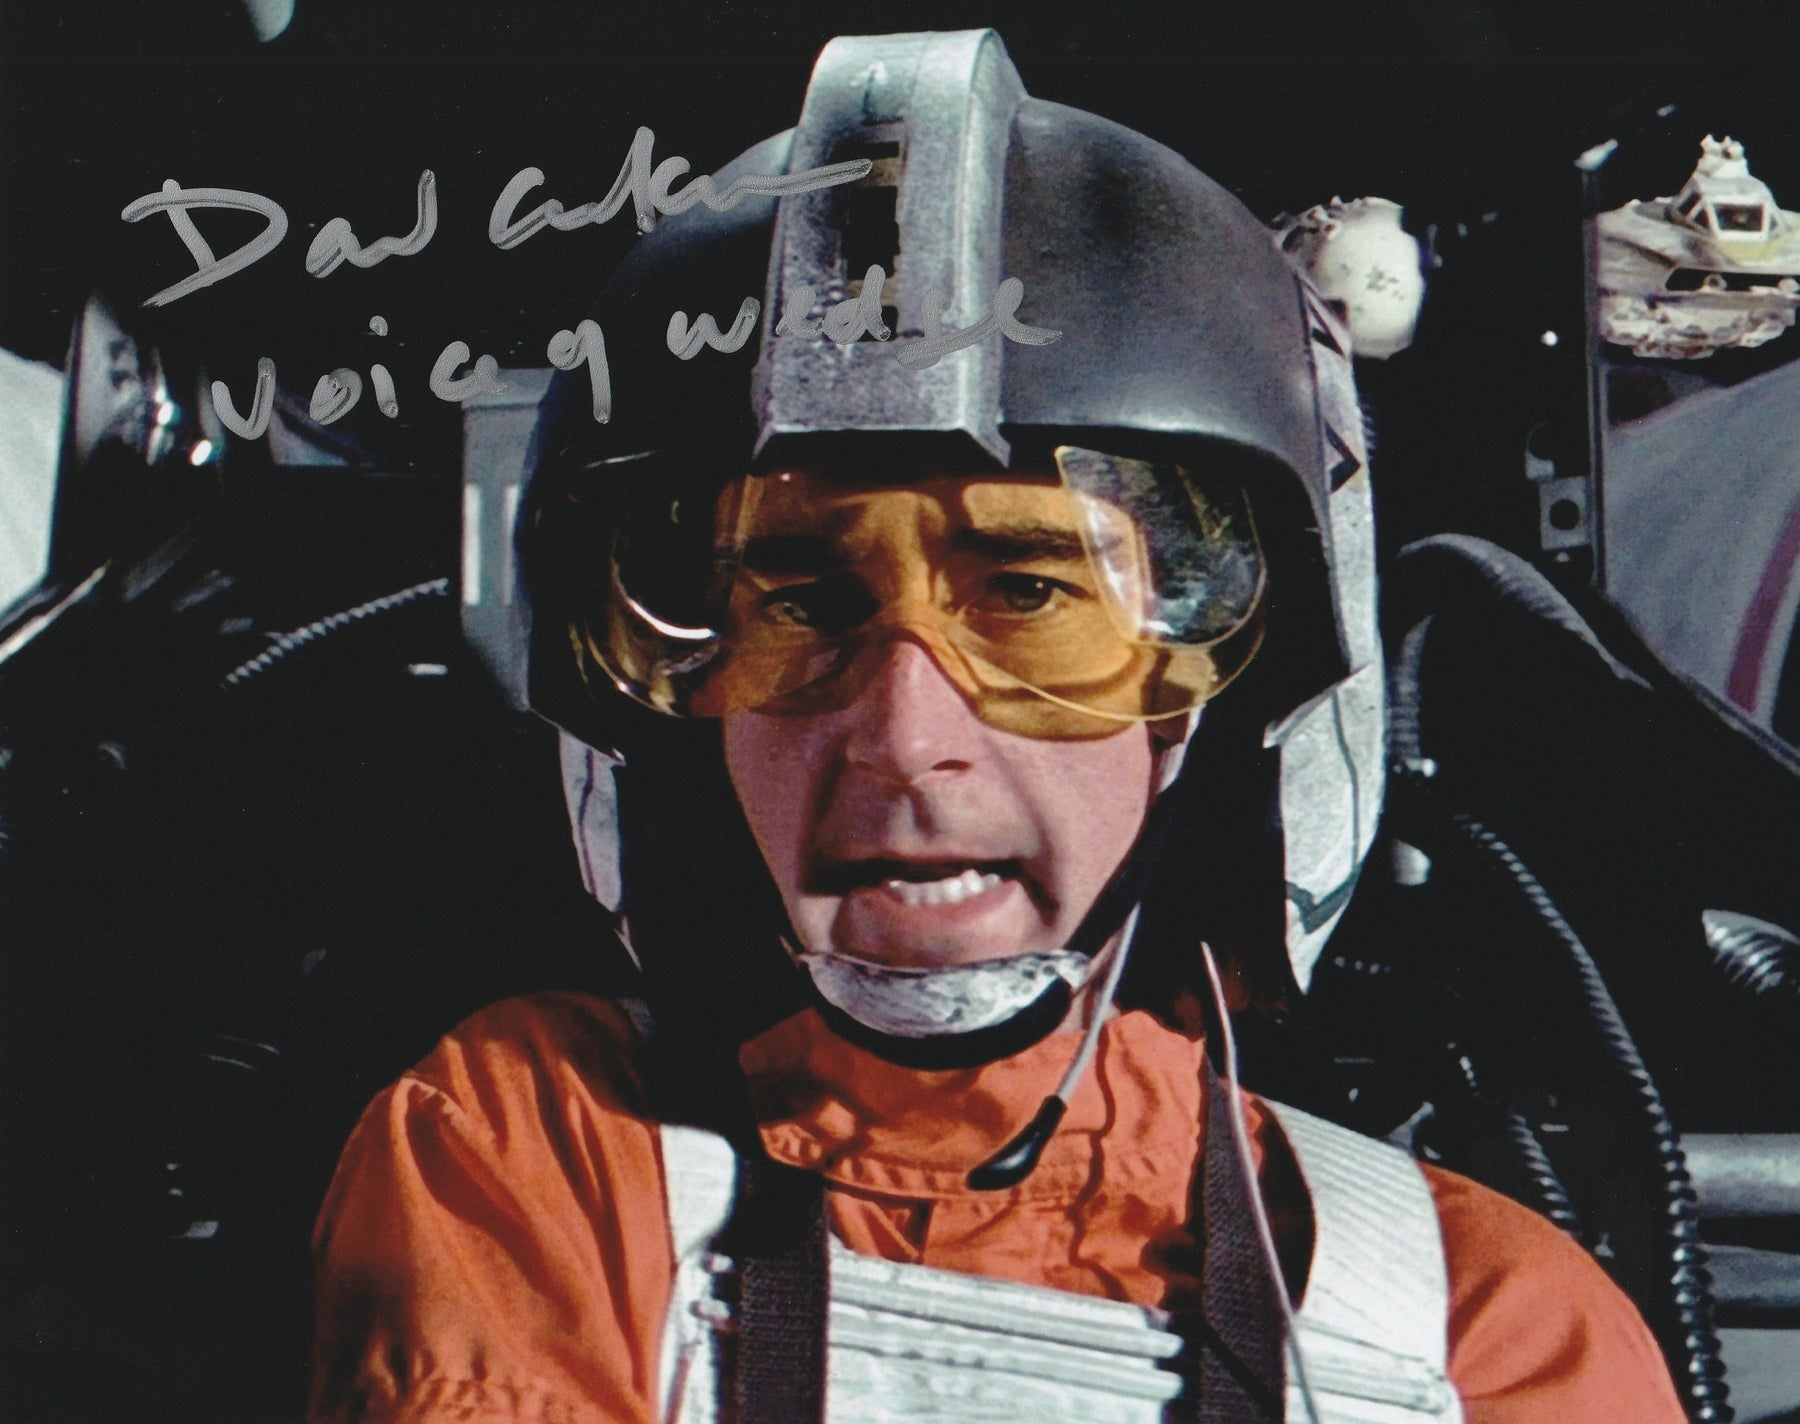 David Ankrum Autograph Star Wars 8x10 Photo Signed COA 4